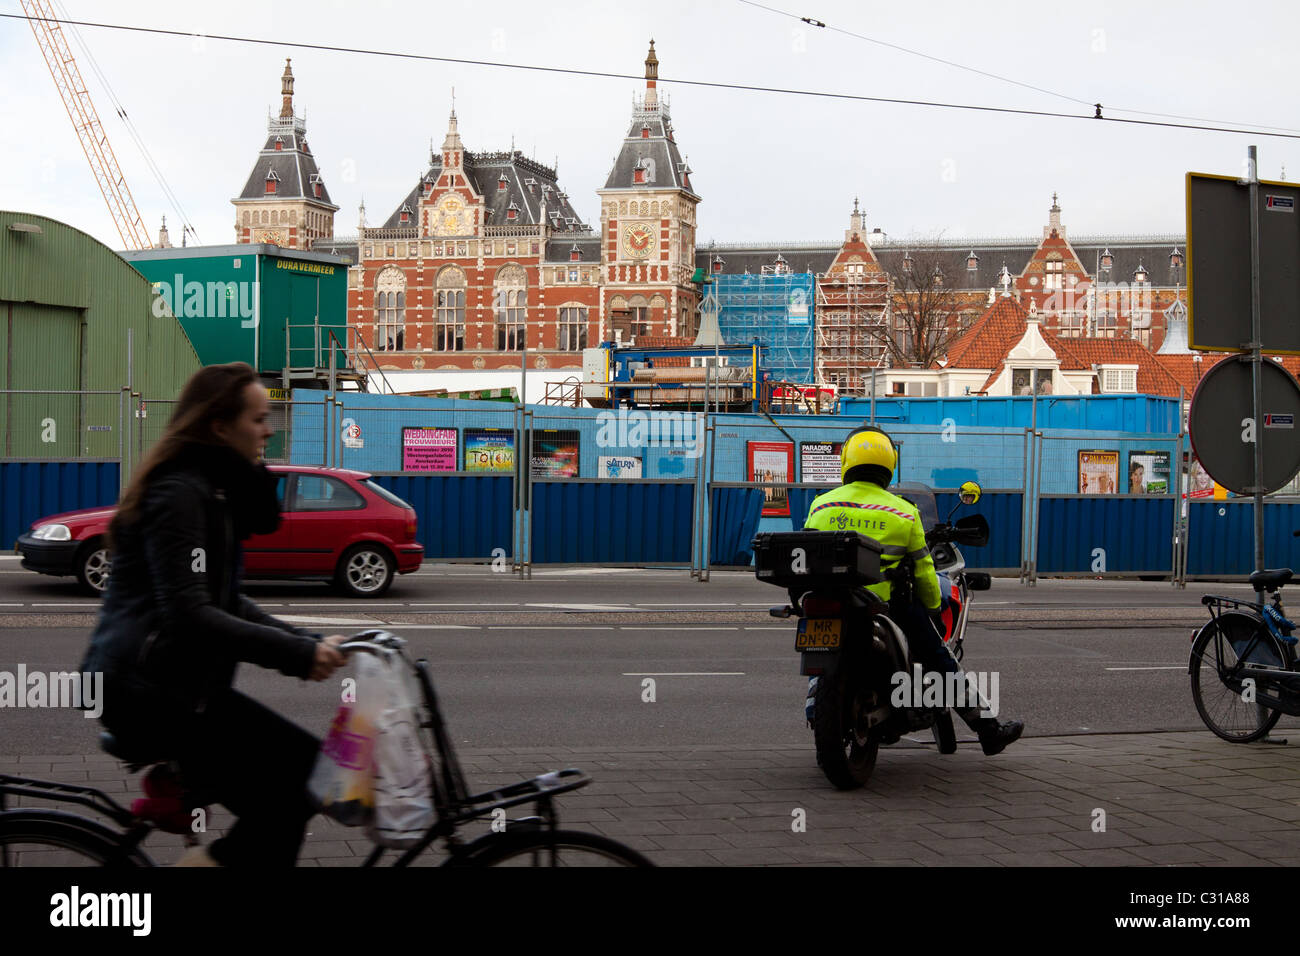 An Amsterdam Policeman in front of Amsterdam Central Station - Stock Image